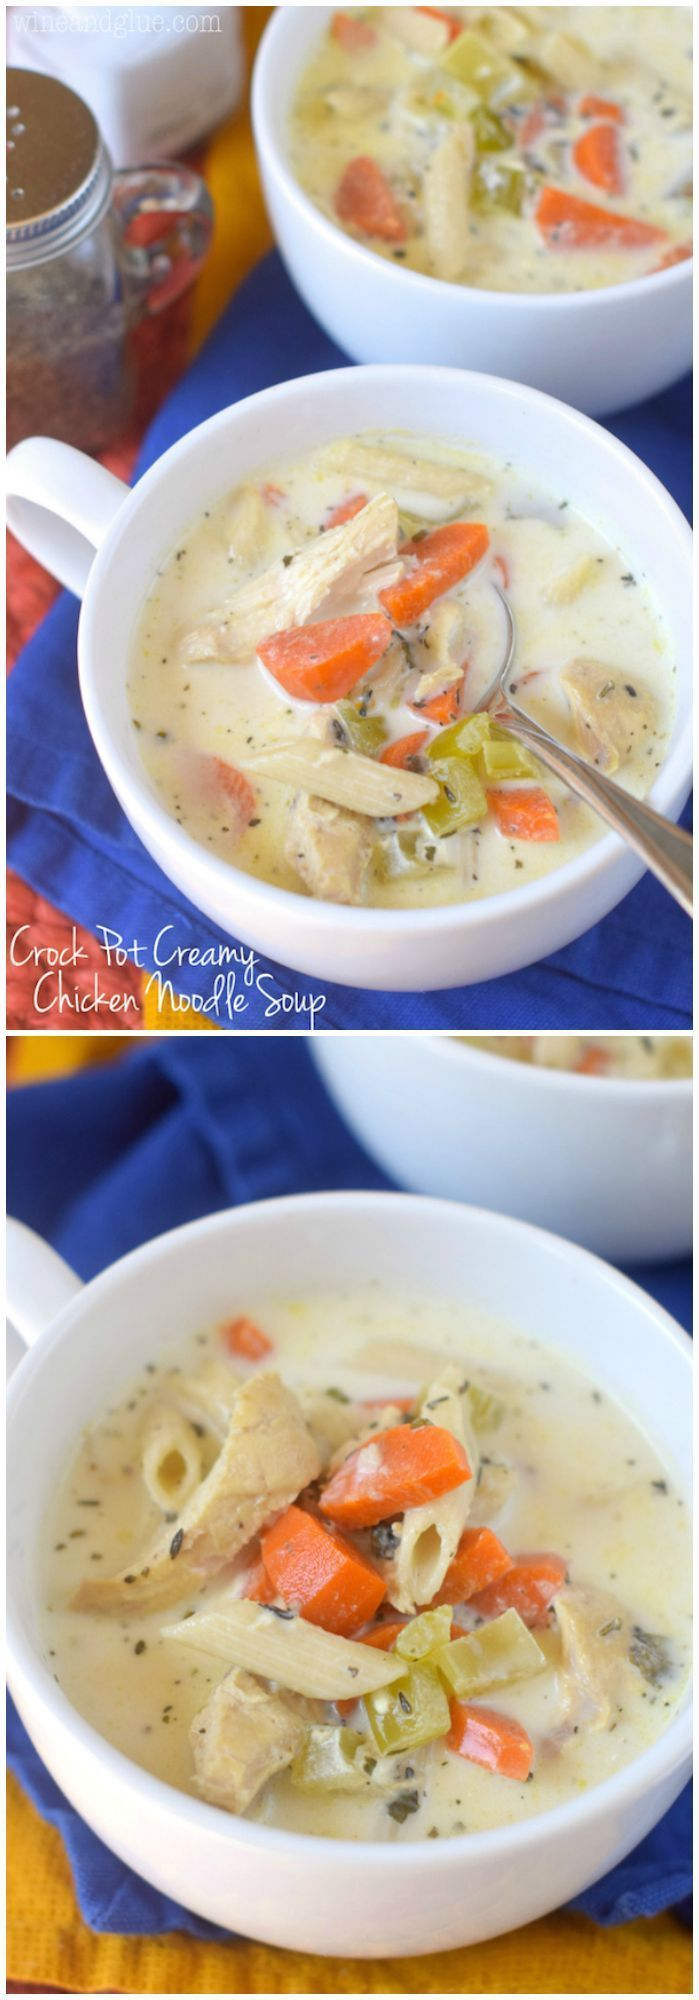 crock pot creamy chicken noodle soup that whips up fast